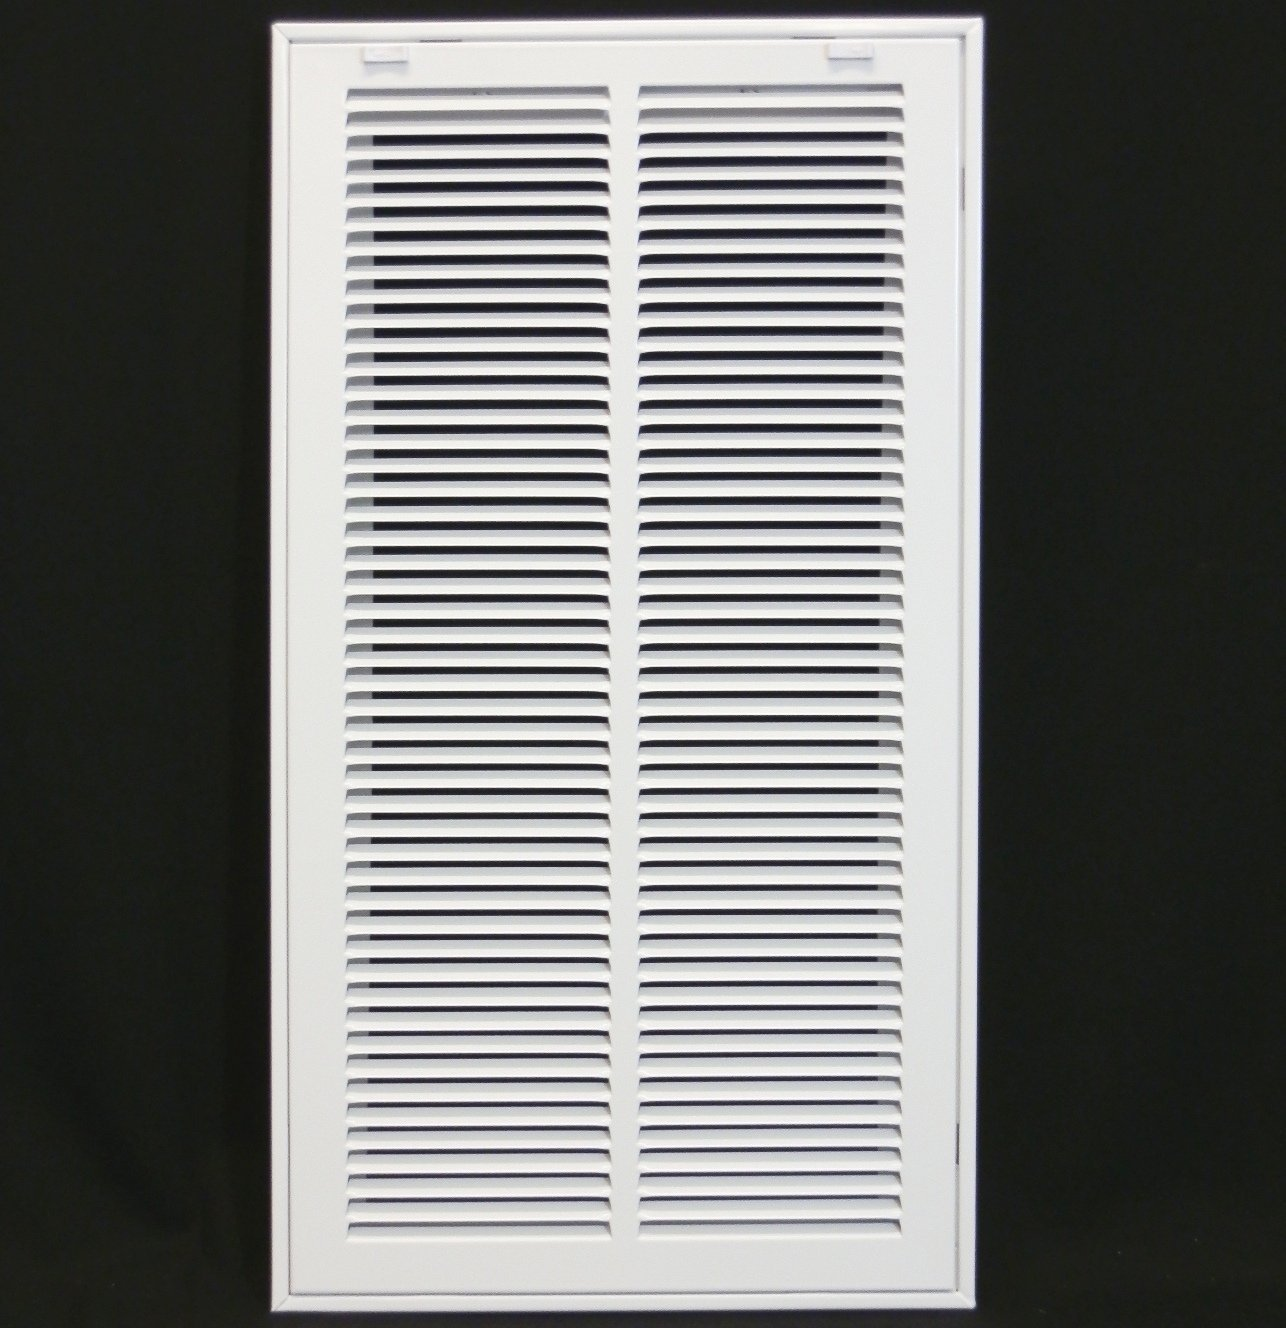 12'' X 24 Steel Return Air Filter Grille for 1'' Filter - Removable Face/Door - HVAC DUCT COVER - Flat Stamped Face - White [Outer Dimensions: 14.5''w X 26.5''h]